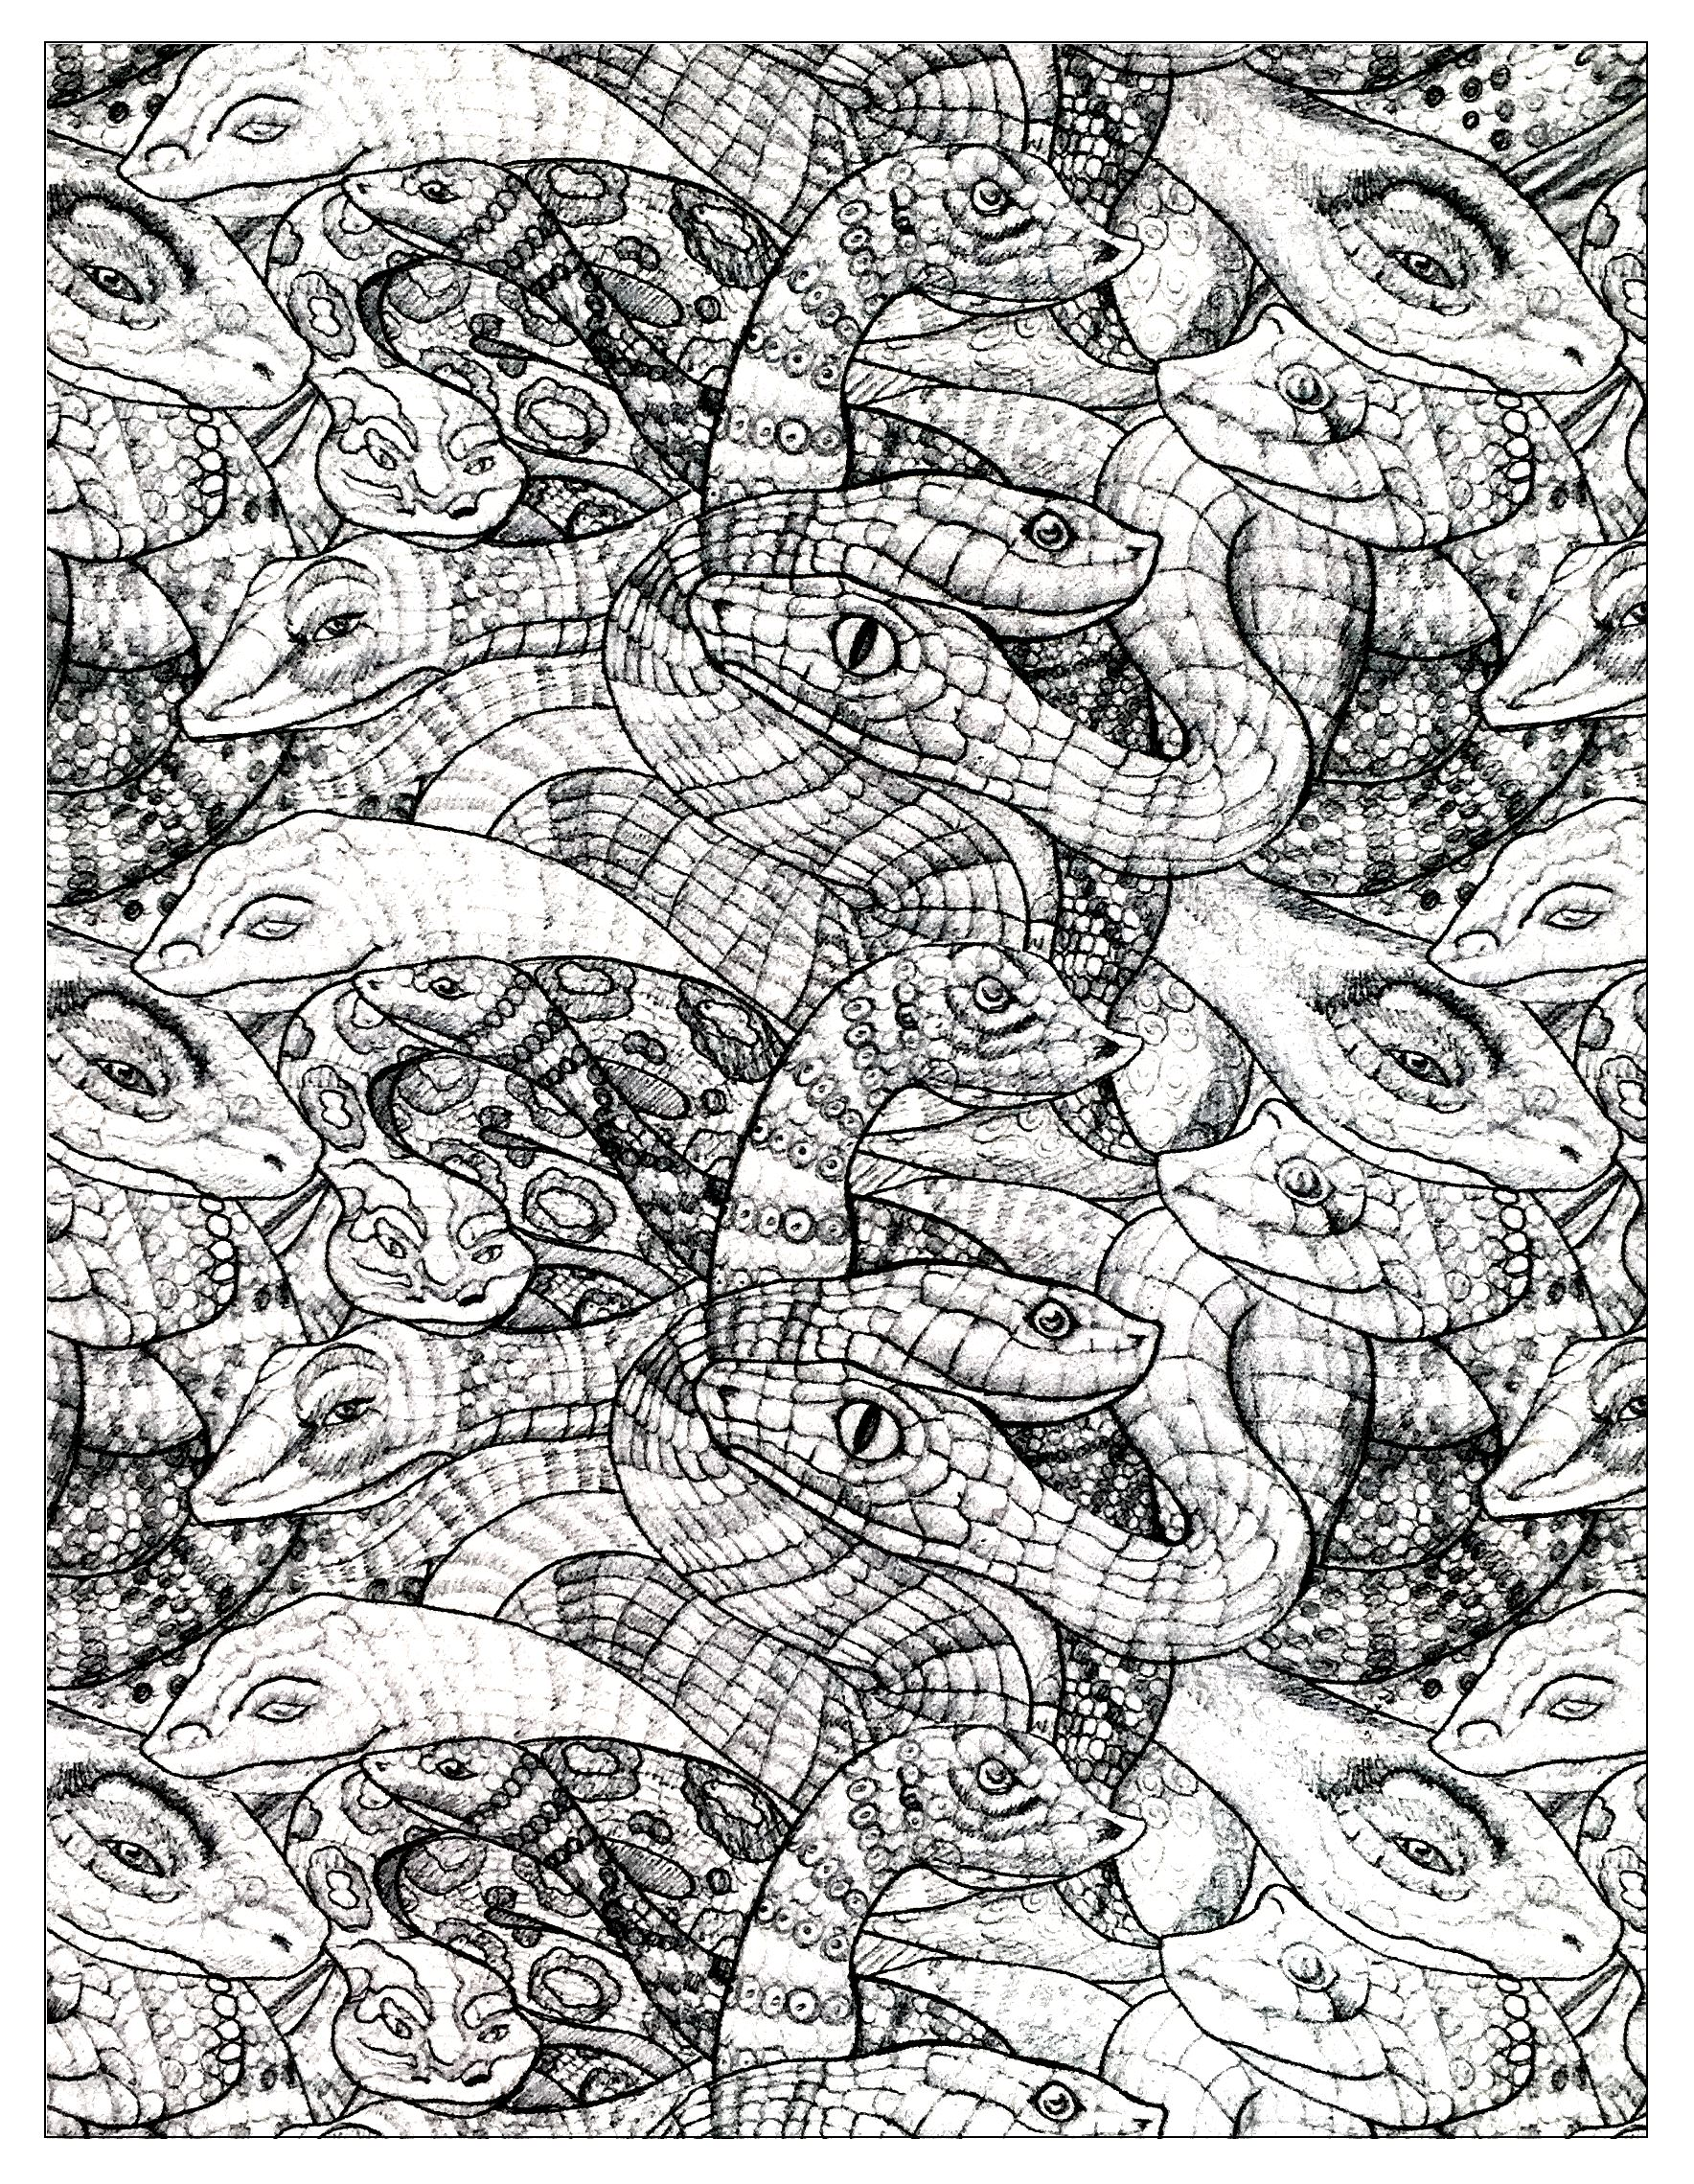 Drawing of entangled snakes with scales drawn in a precise and realistic way